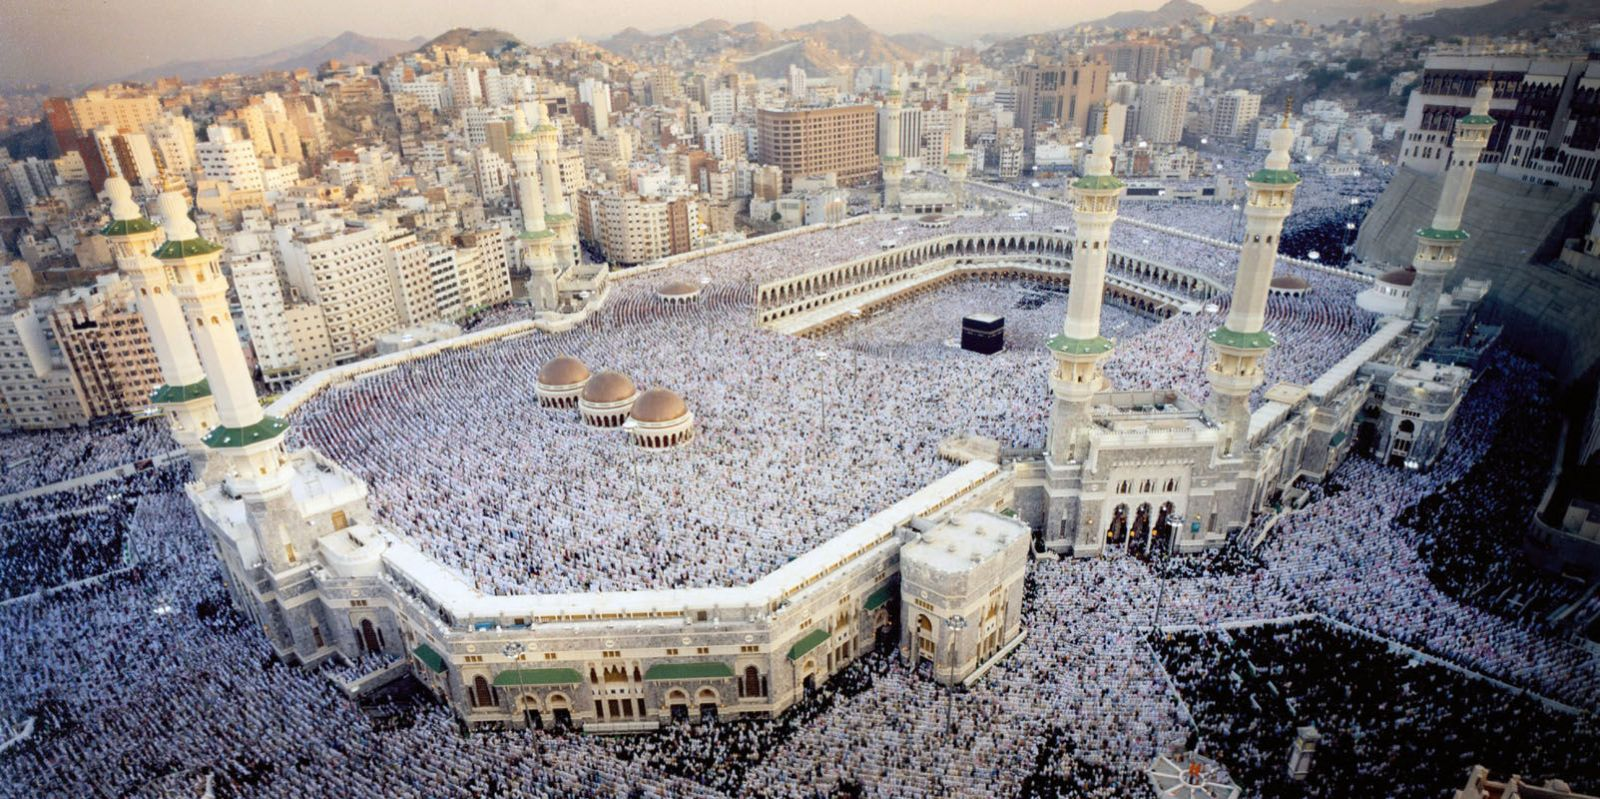 Umrah Banner: Umrah In Saudi Arabia Tour Package From India With Hotels